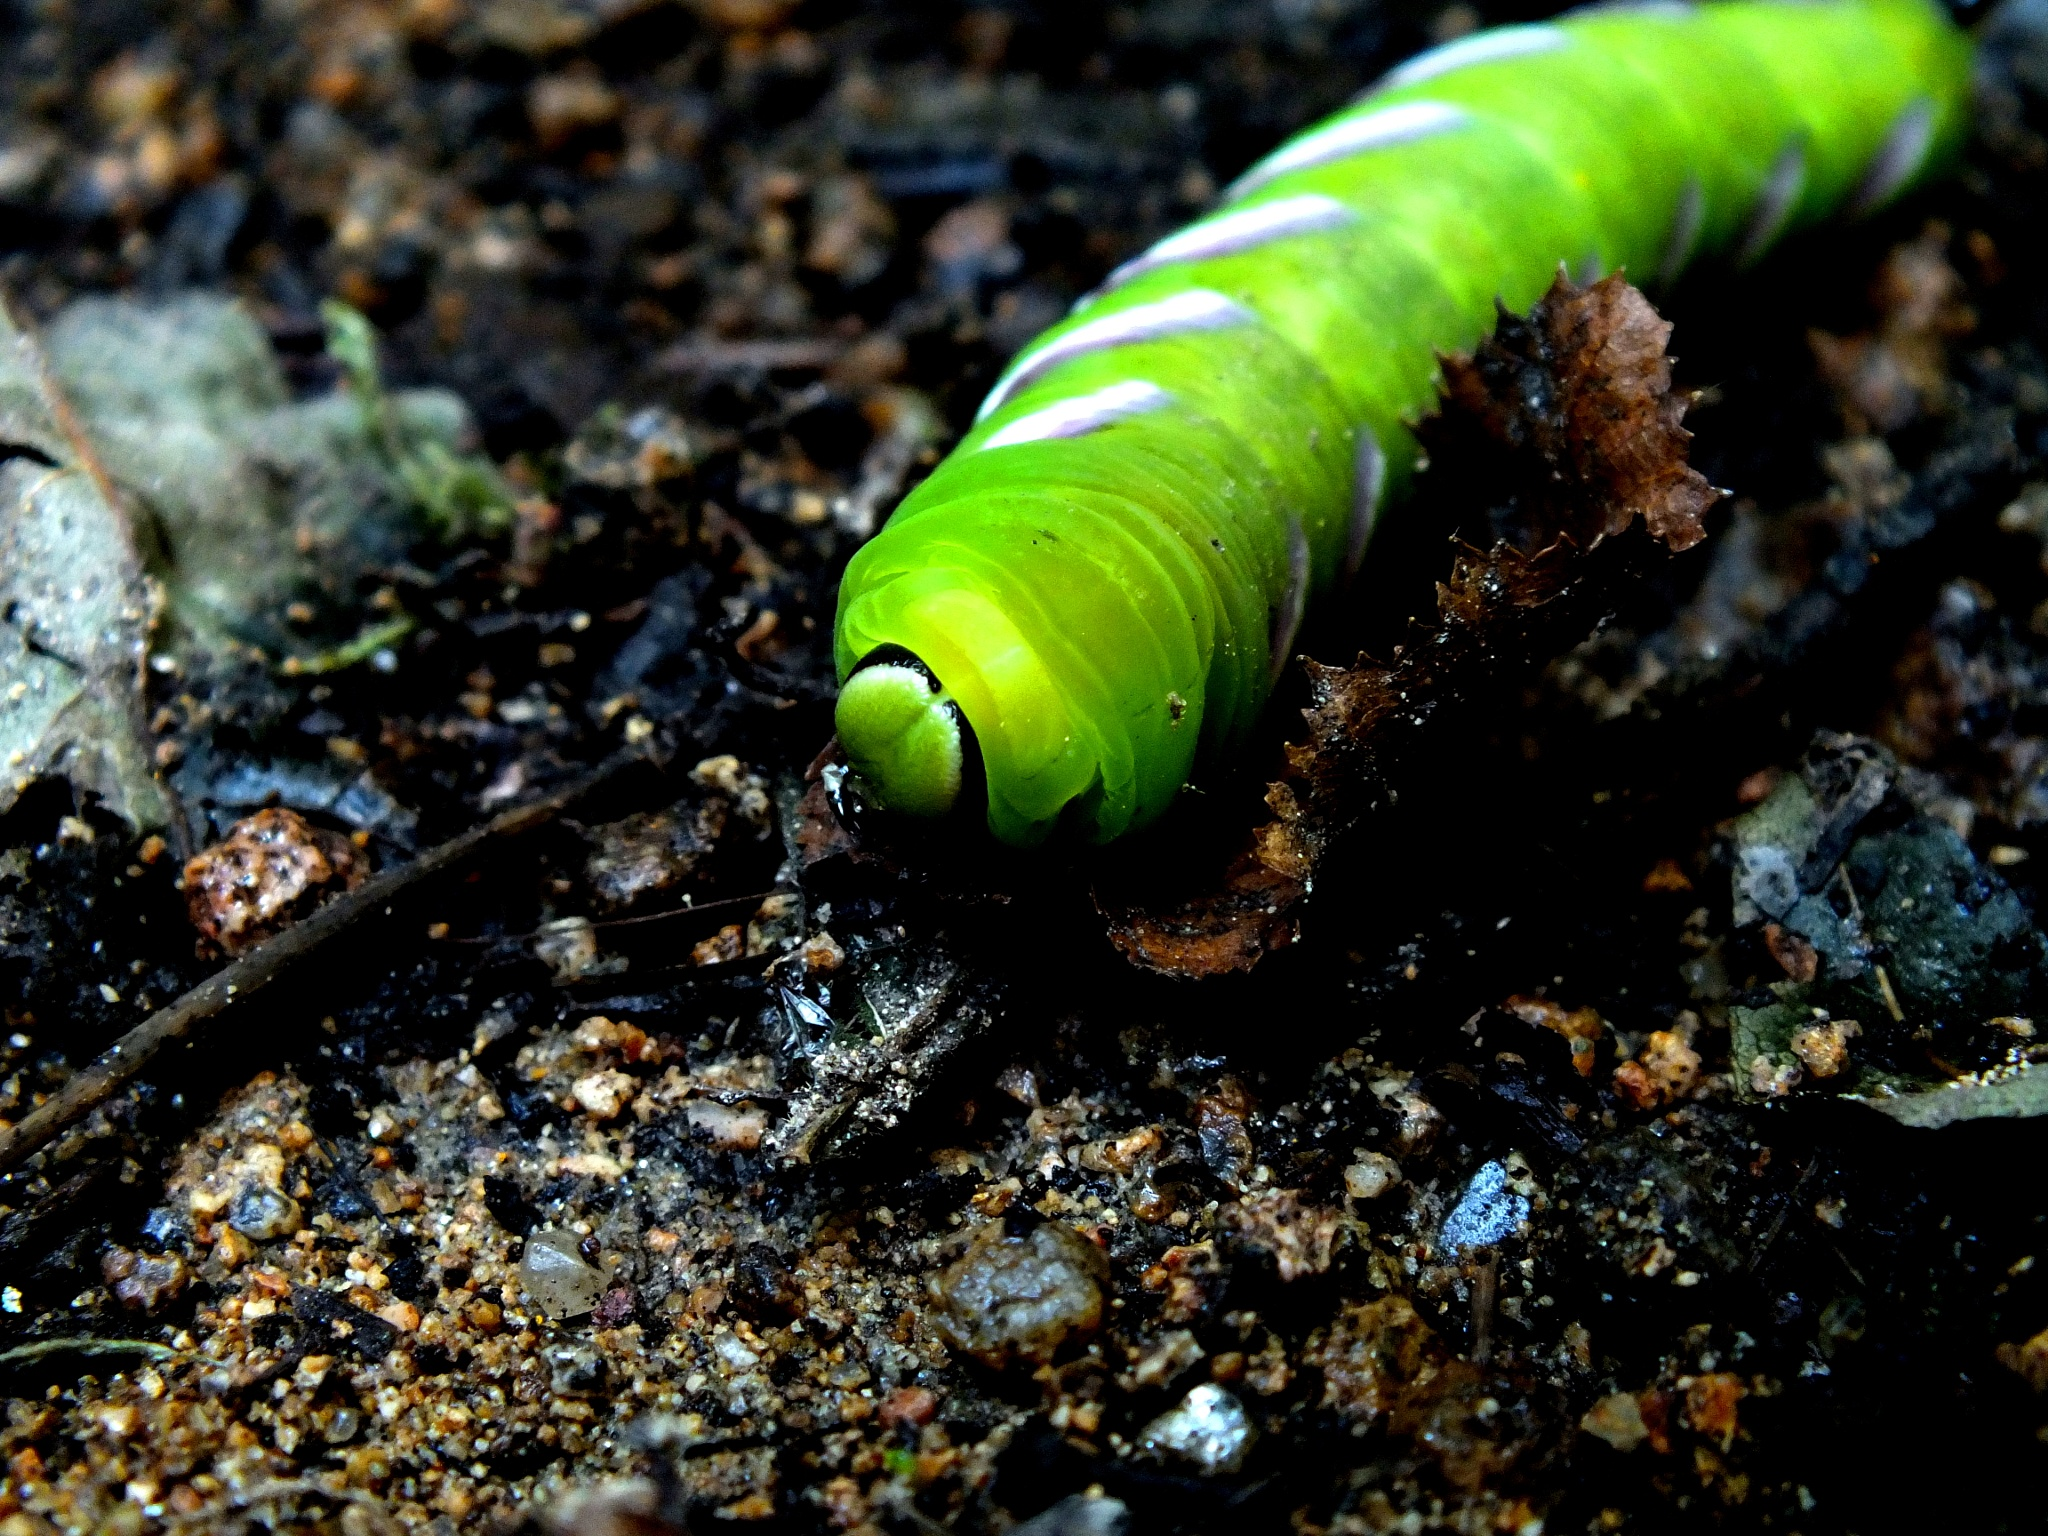 Pine Hawkmoth Caterpillar by Iceotty